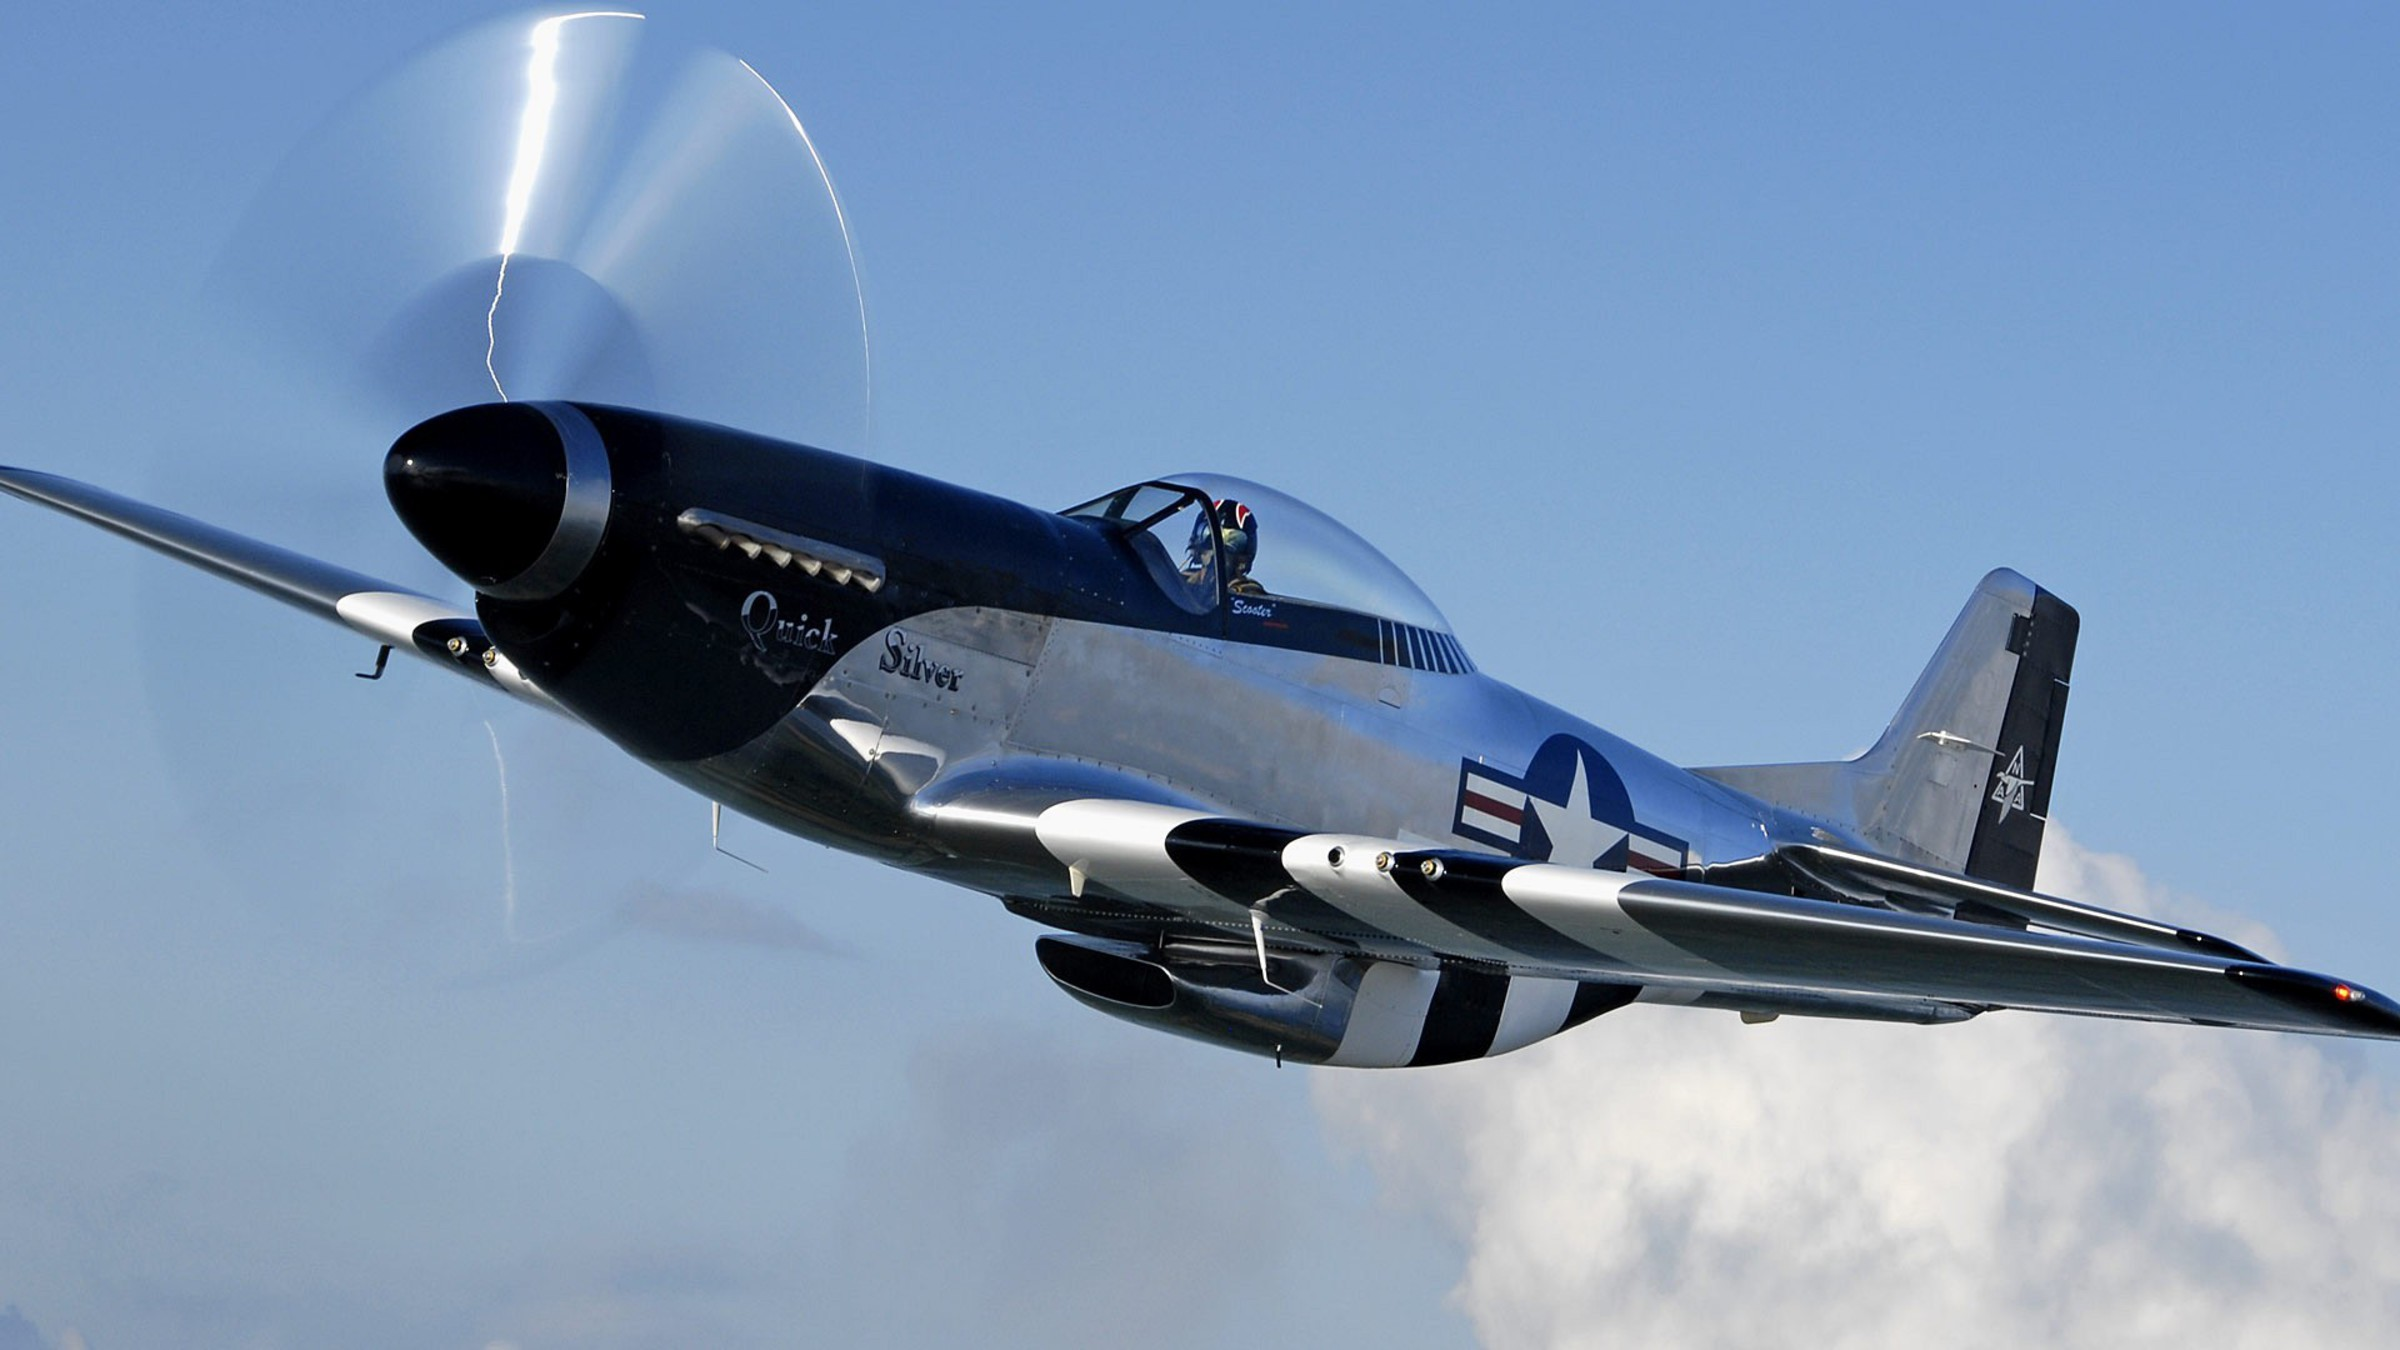 Aircraft Warbird P 51 Mustang Wallpaper Most Beautiful Fighter